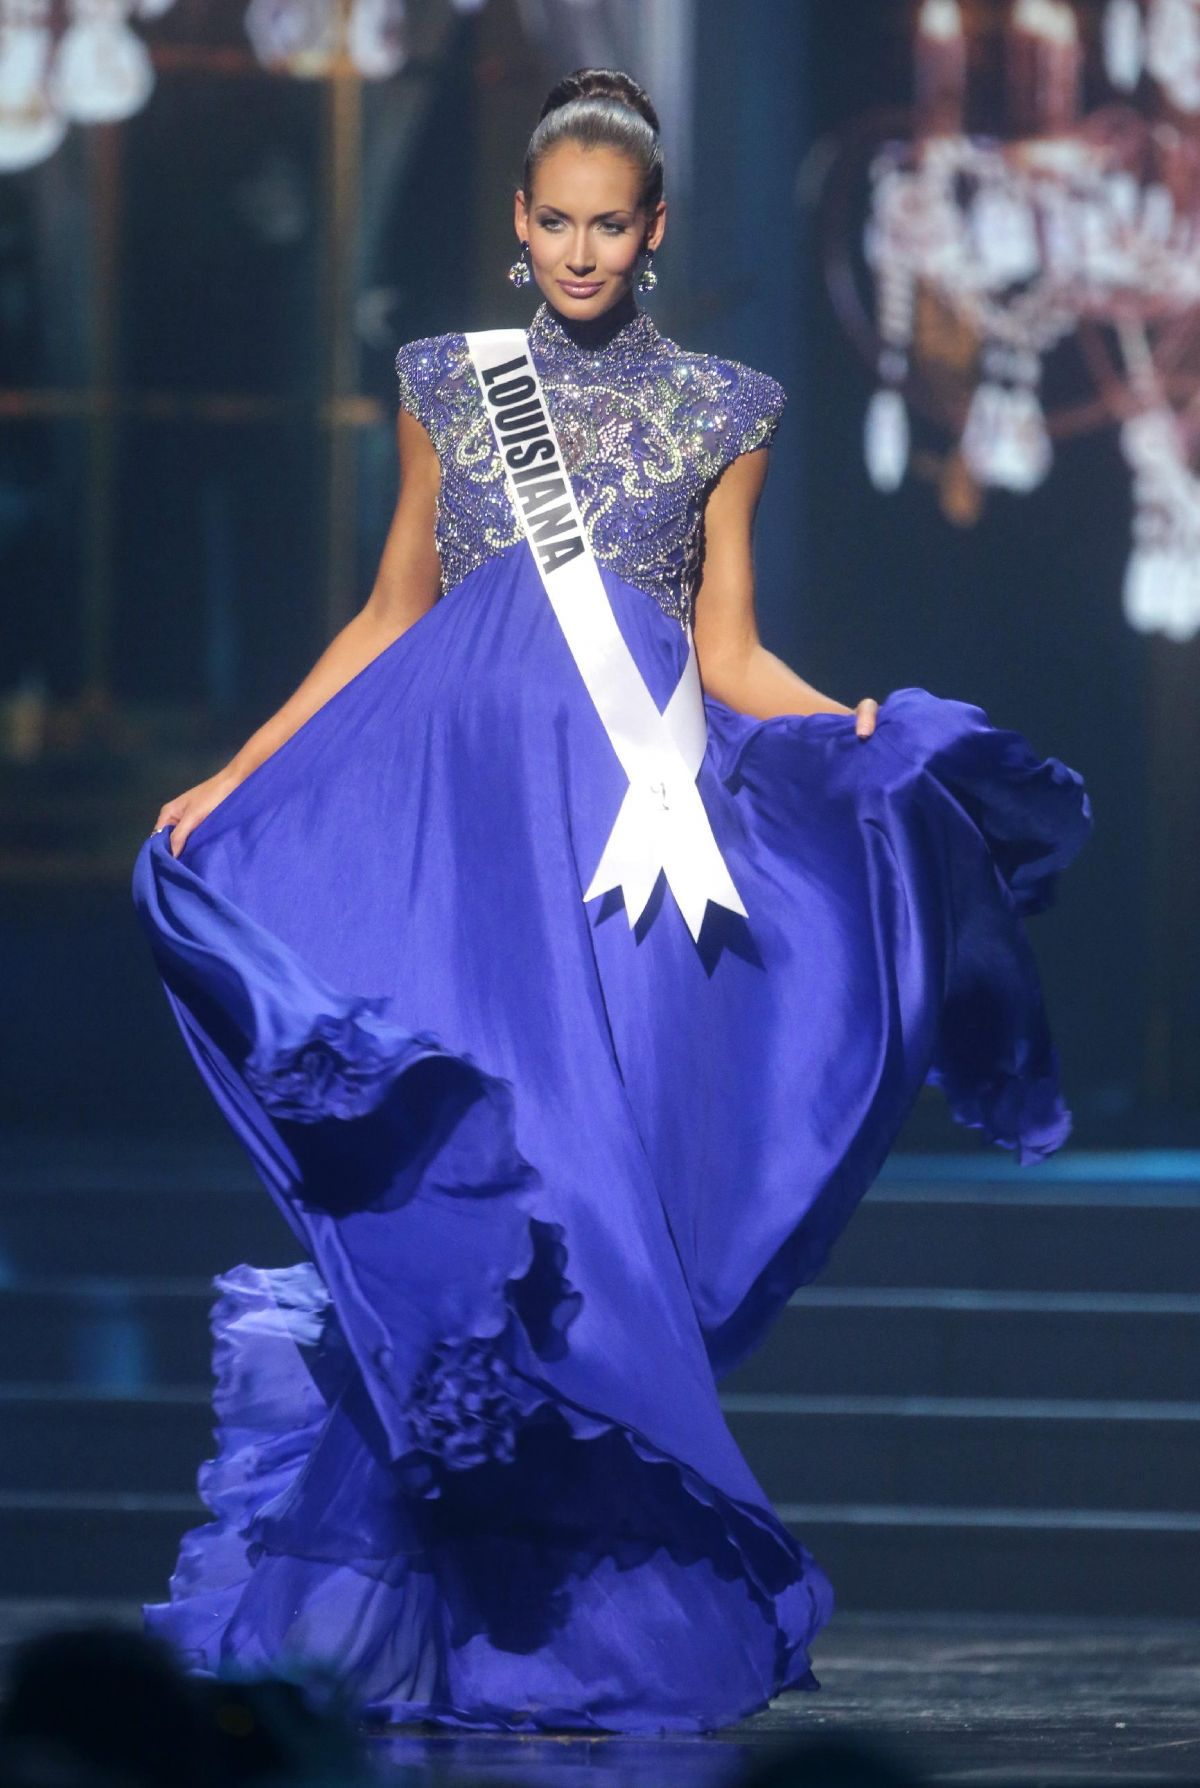 Brittany Guidry At Miss USA Preliminary Competition